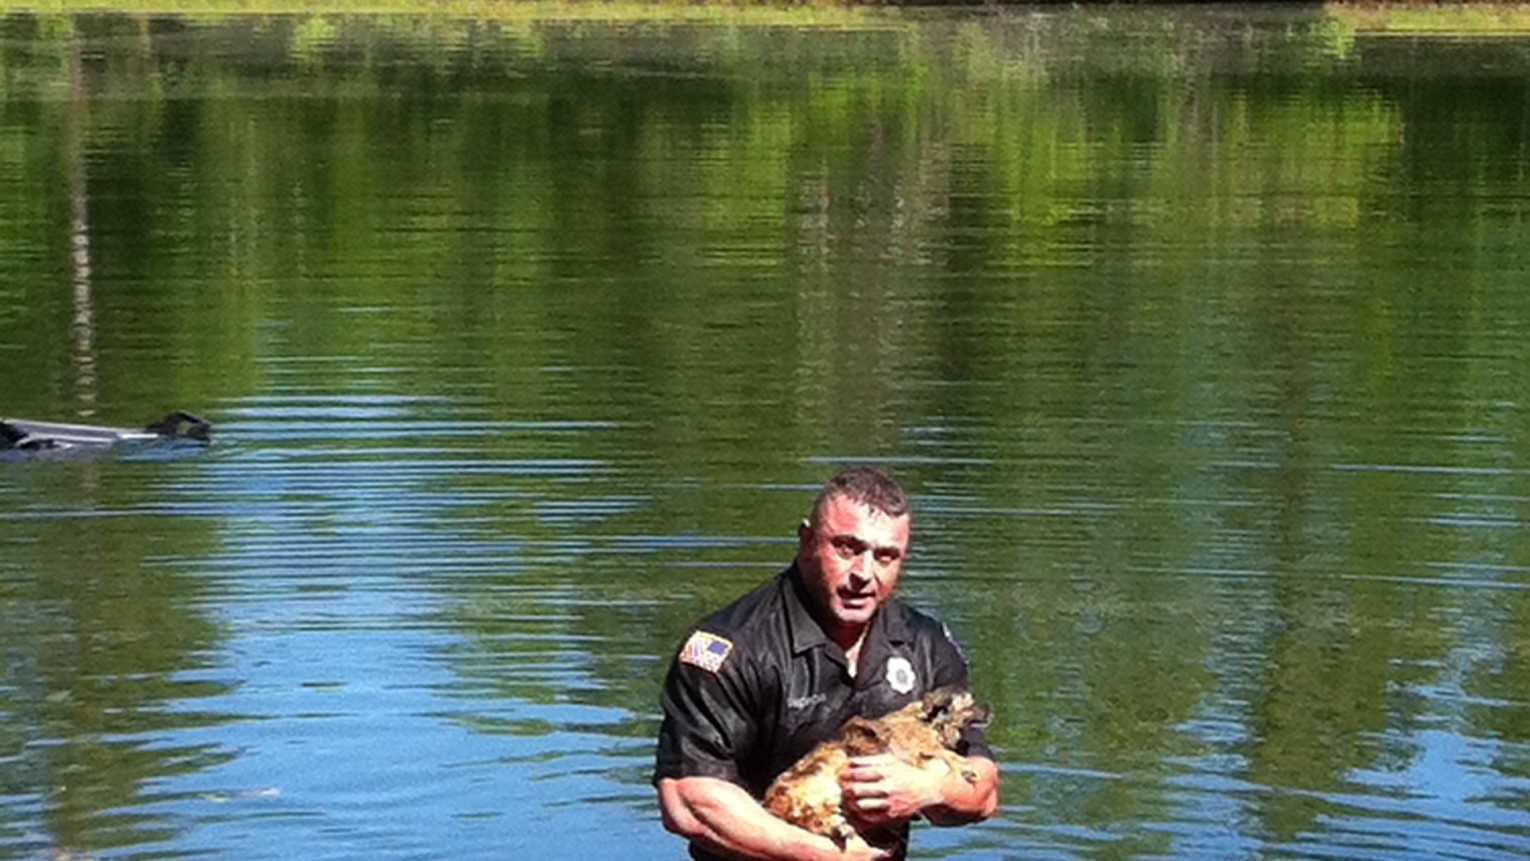 Mass. officer rescues dog from submerged pickup truck